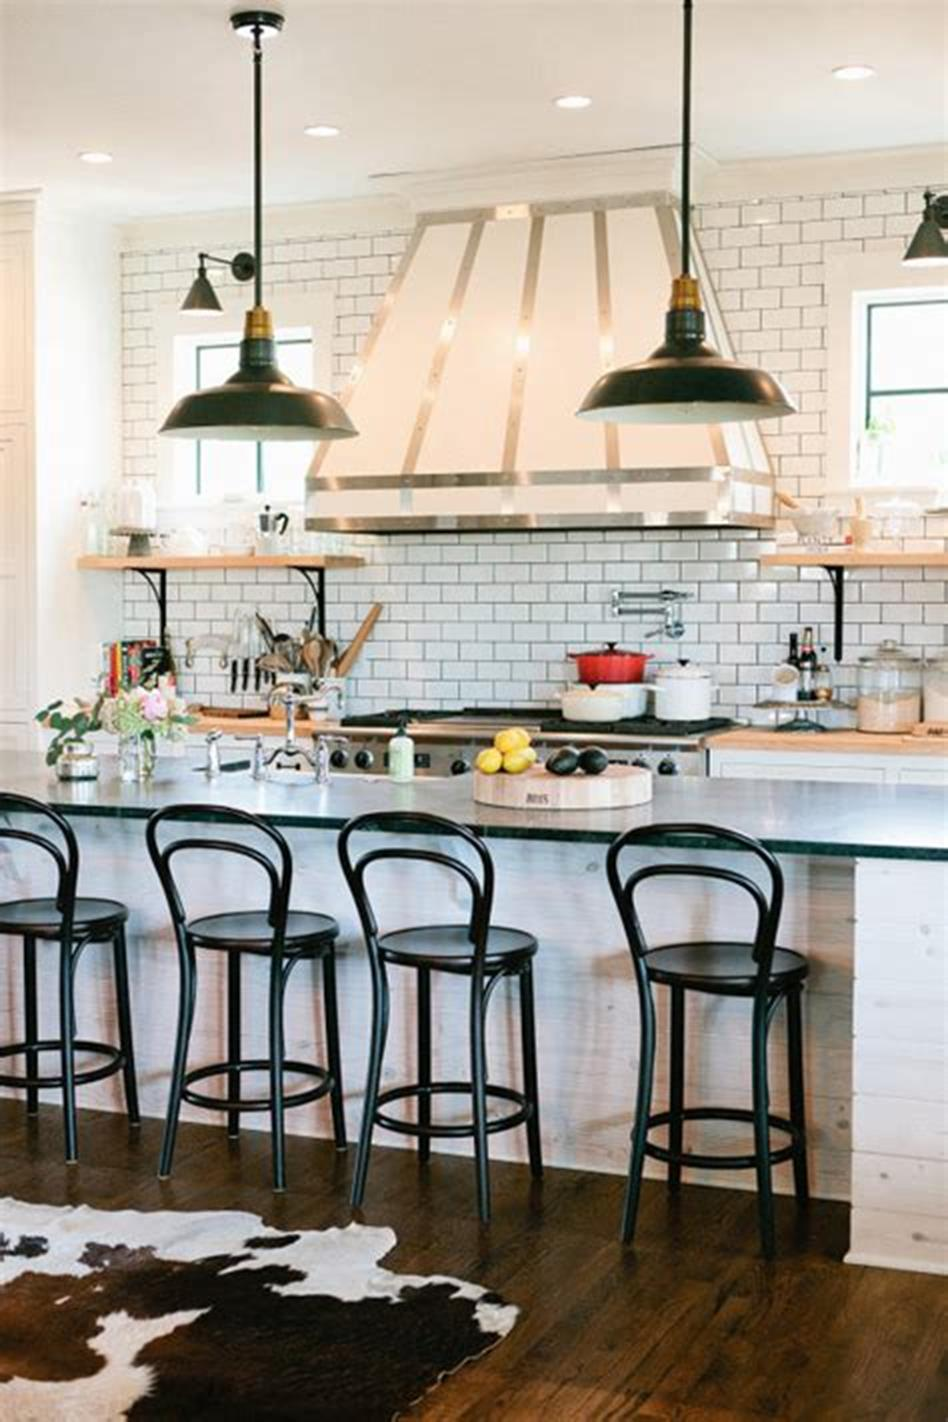 50 Inspiring Farmhouse Style Kitchen Lighting Fixtures Ideas 63